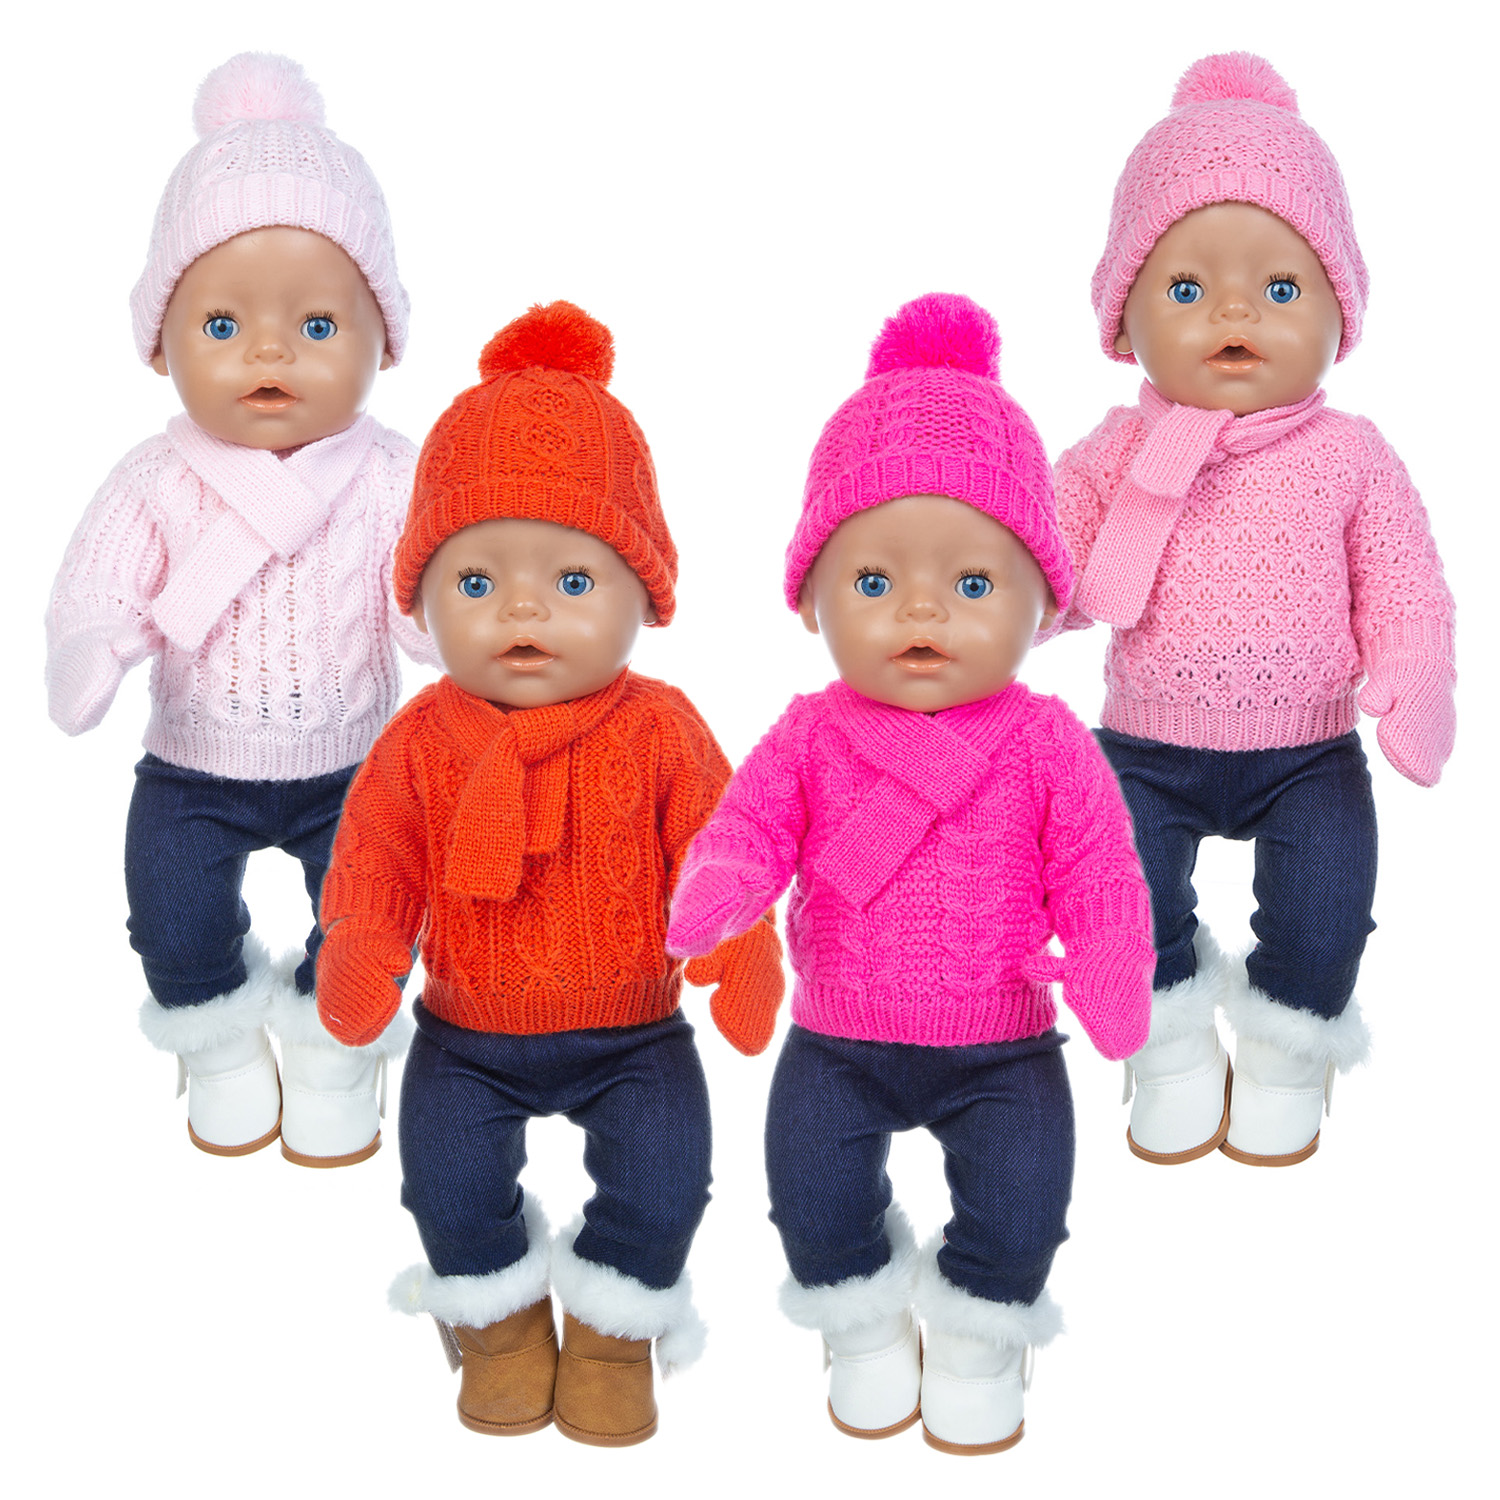 1Set Sweater Suit+hat+scarf +gloves Fit 17inch 43cm Doll Clothes Born Baby Suit For Baby Birthday Festival Gift